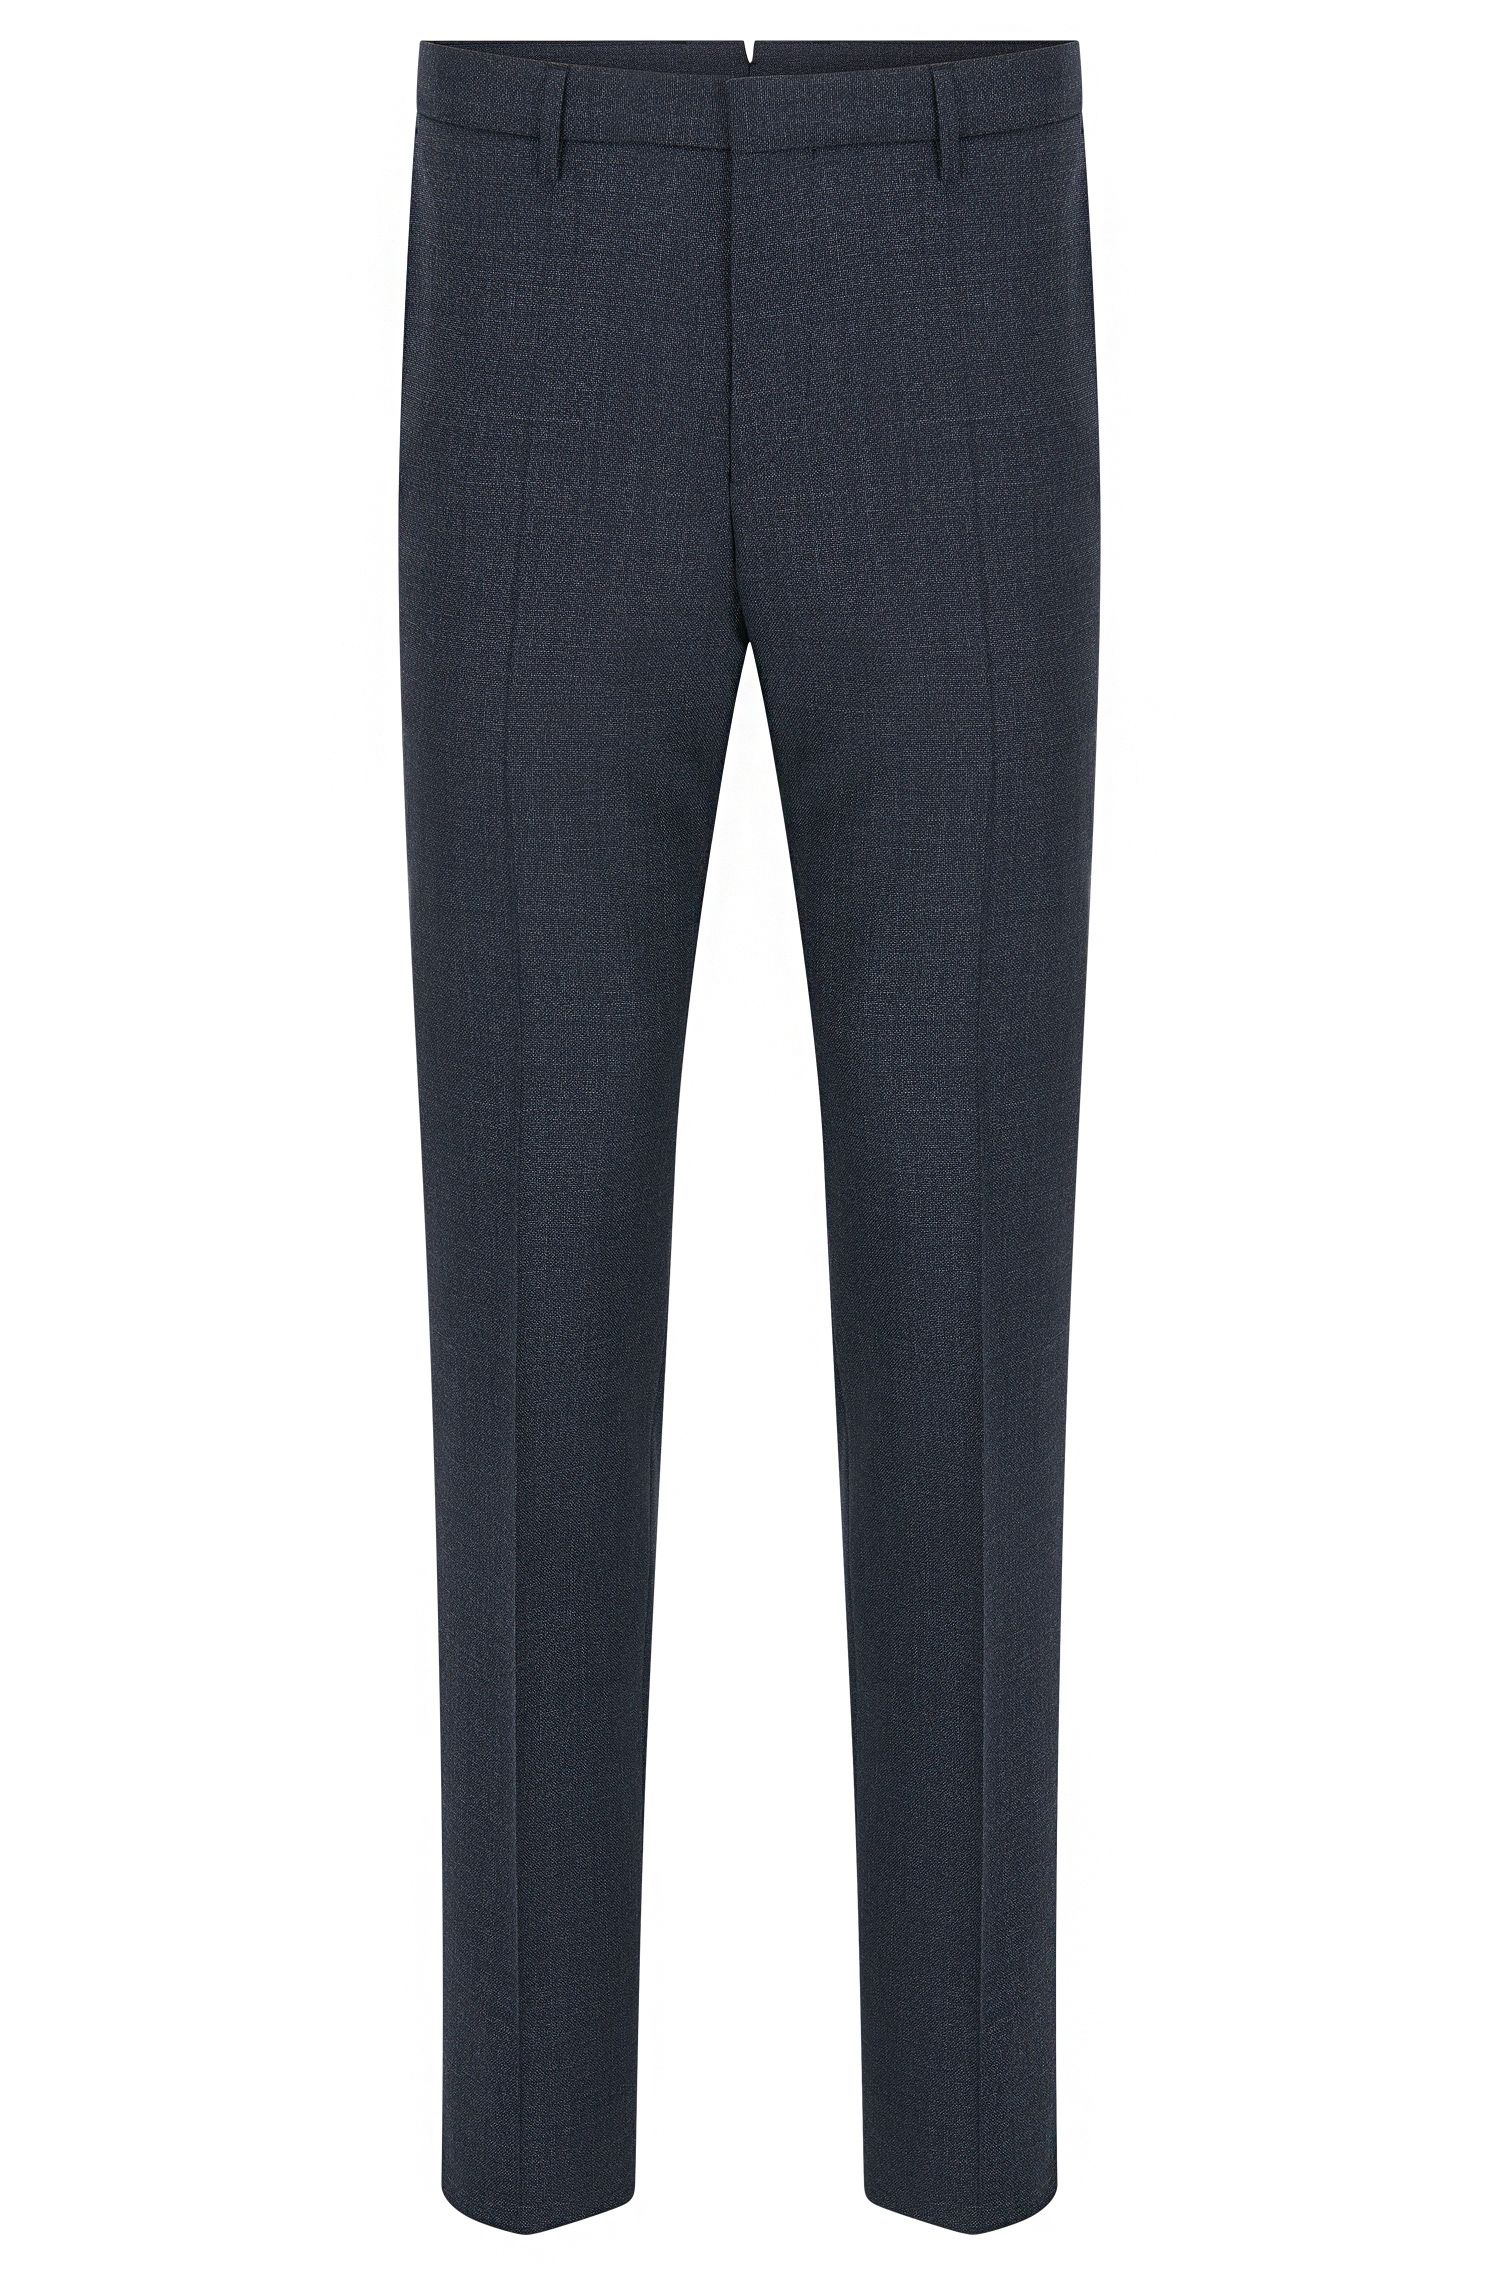 Virgin Wool Dress Pant, Slim Fit | T-Bloom